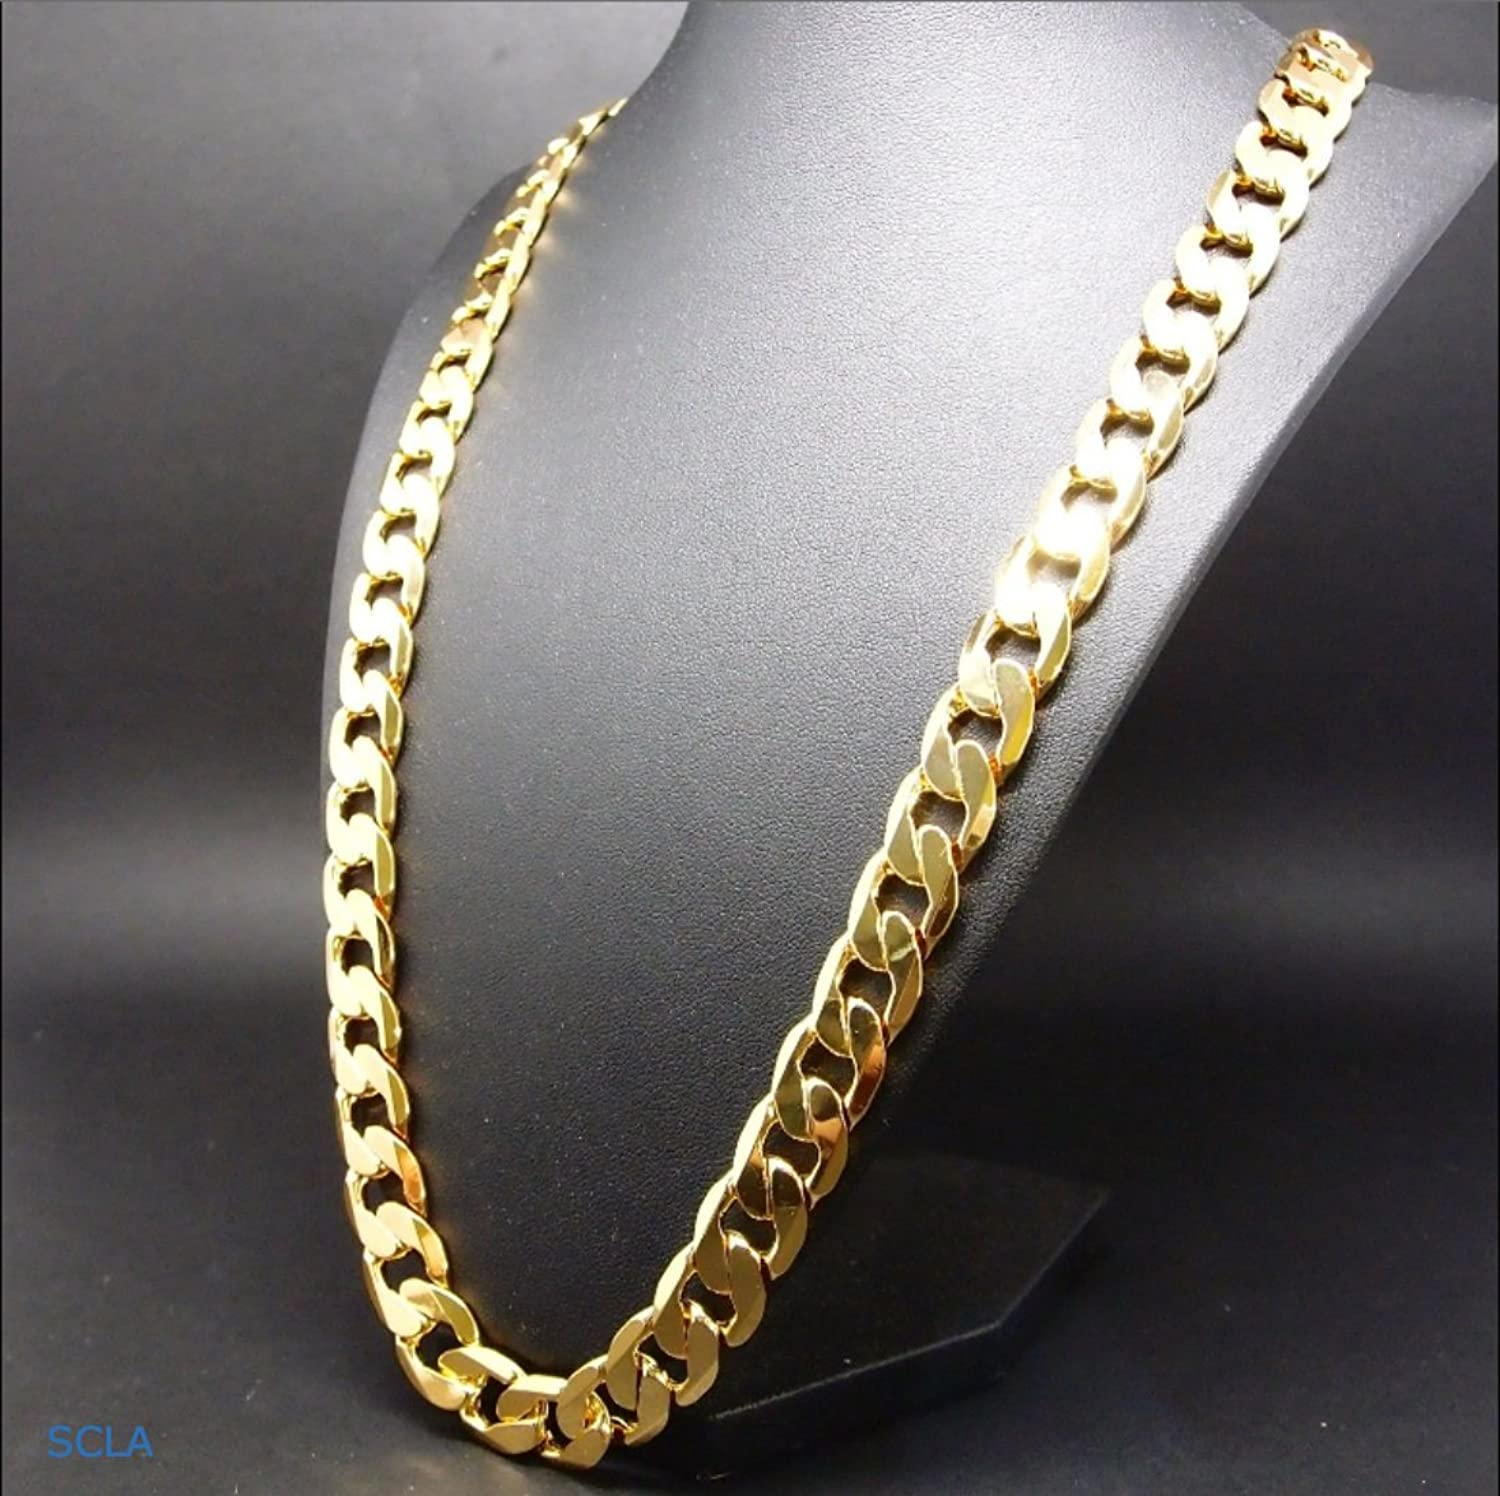 gift fashion necklace rope jewelry stainless real product for gold com plated under dhgate chains chain men steel best